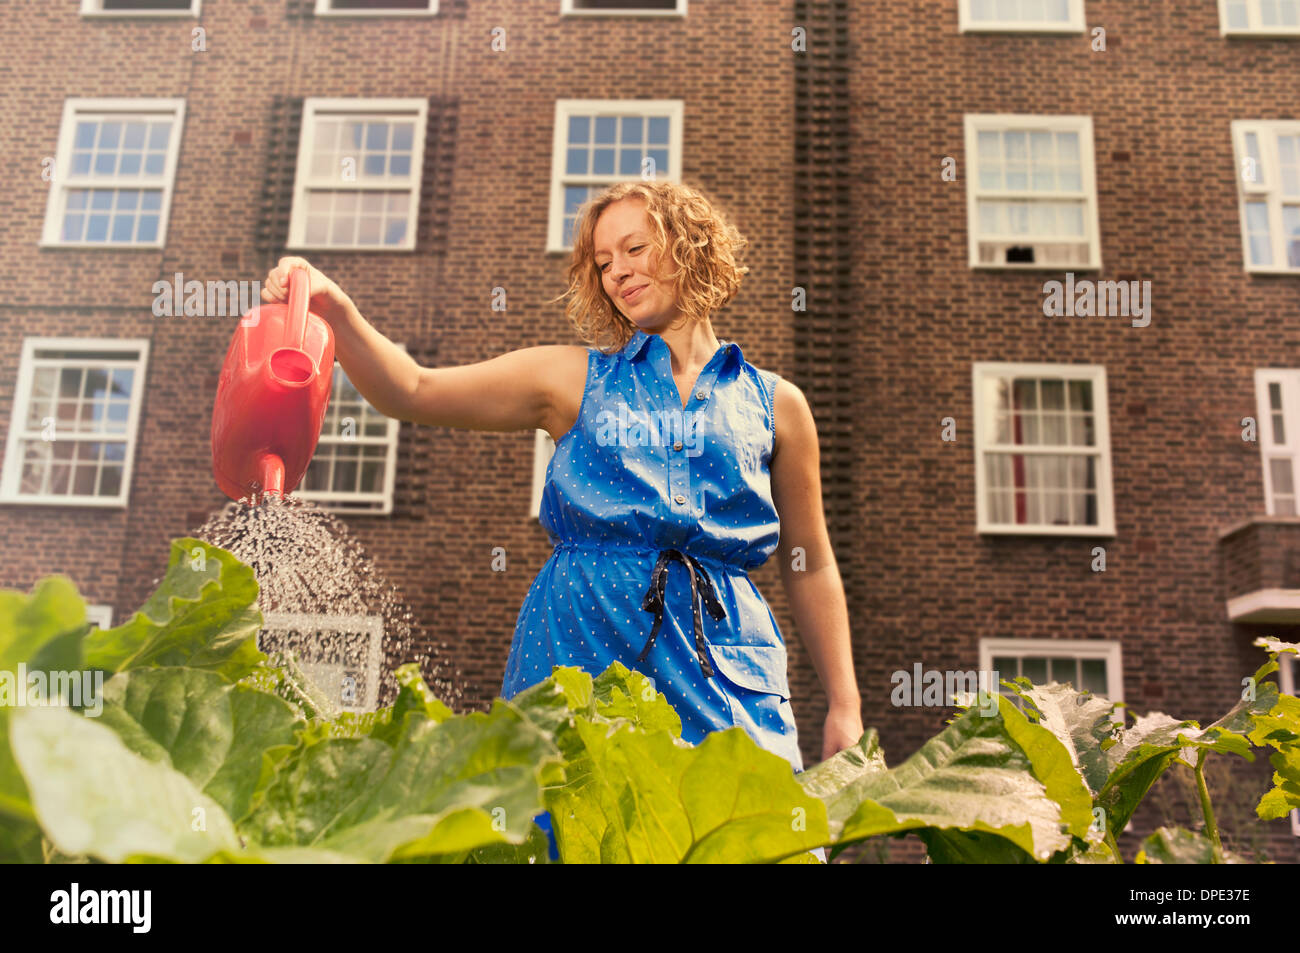 Young woman watering vegetables on council estate allotment - Stock Image